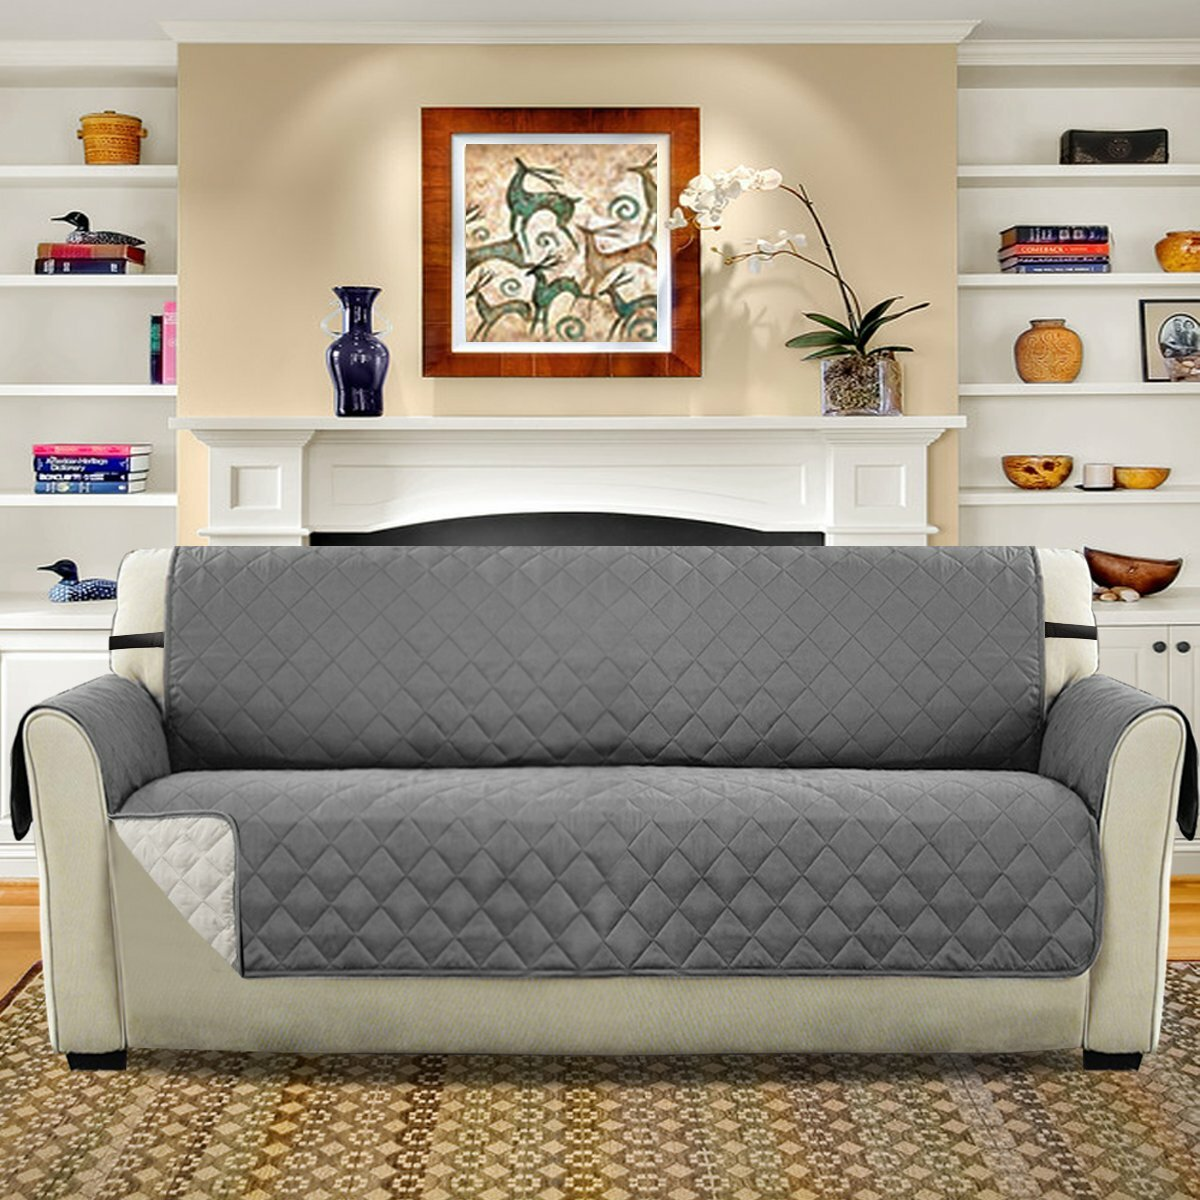 Marvelous Diamond T Cushion Sofa Slipcover Gmtry Best Dining Table And Chair Ideas Images Gmtryco